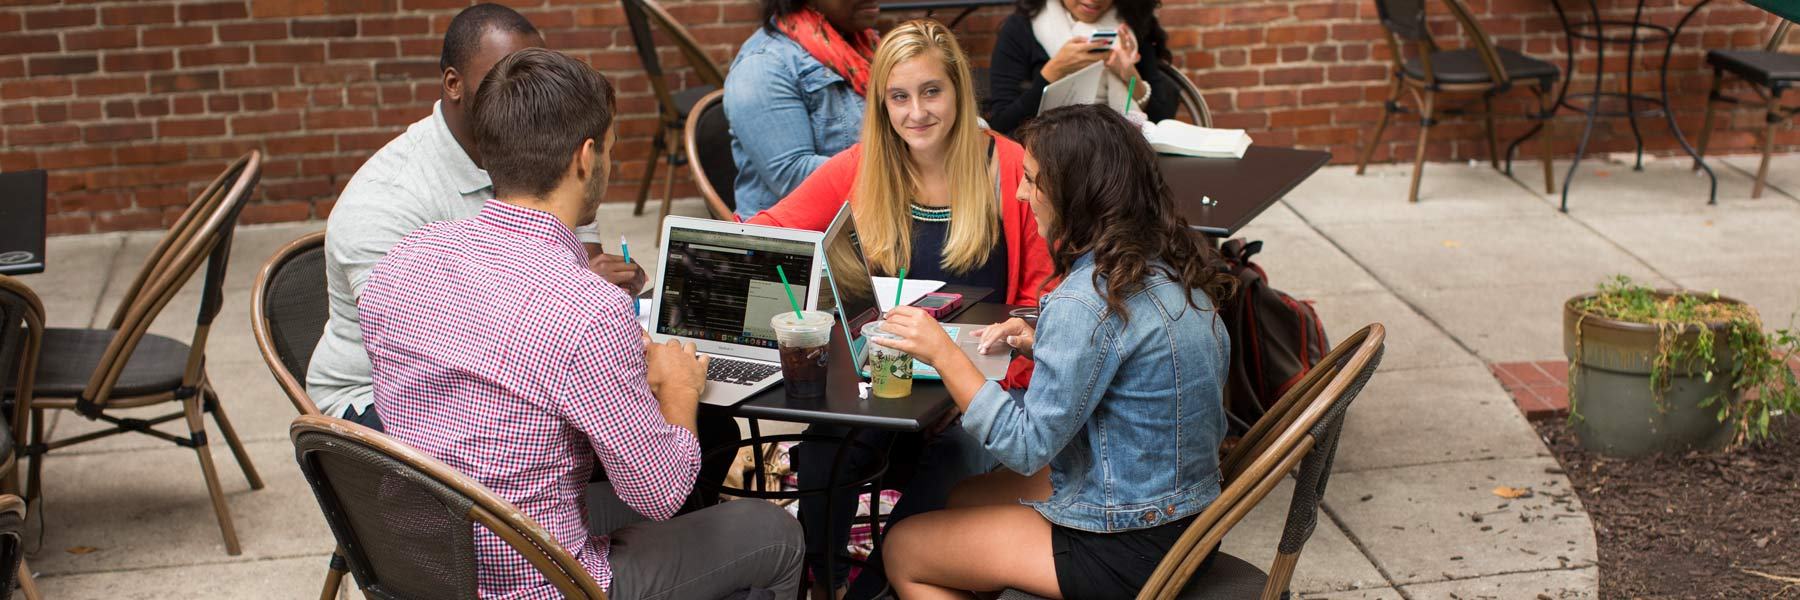 A group of students discuss college in an outdoor courtyard.